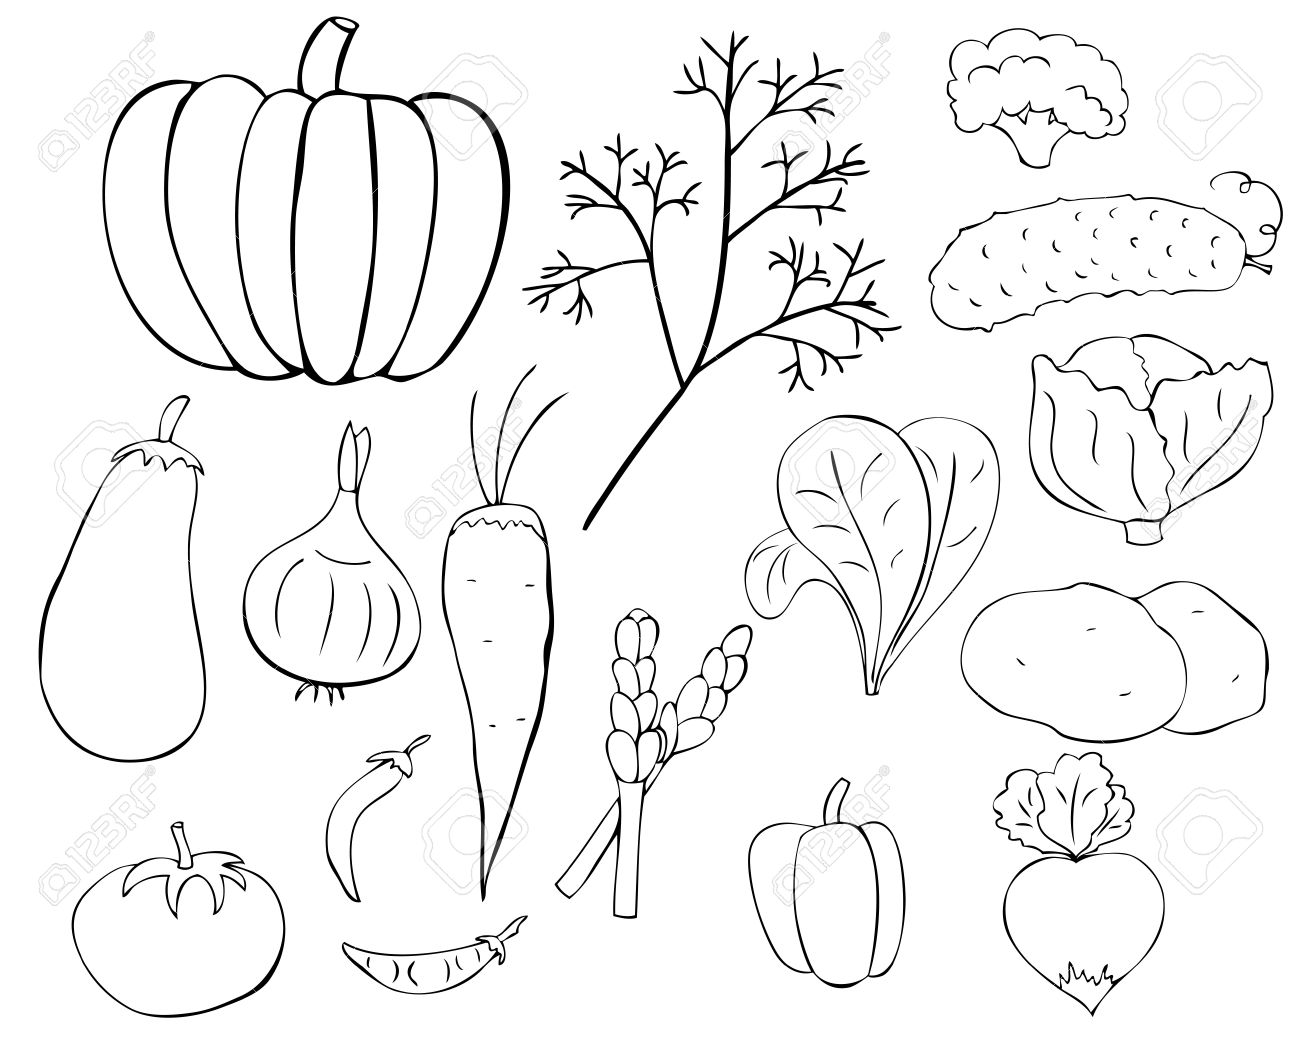 Vegetables Black And White Clipart Vegetables Black And